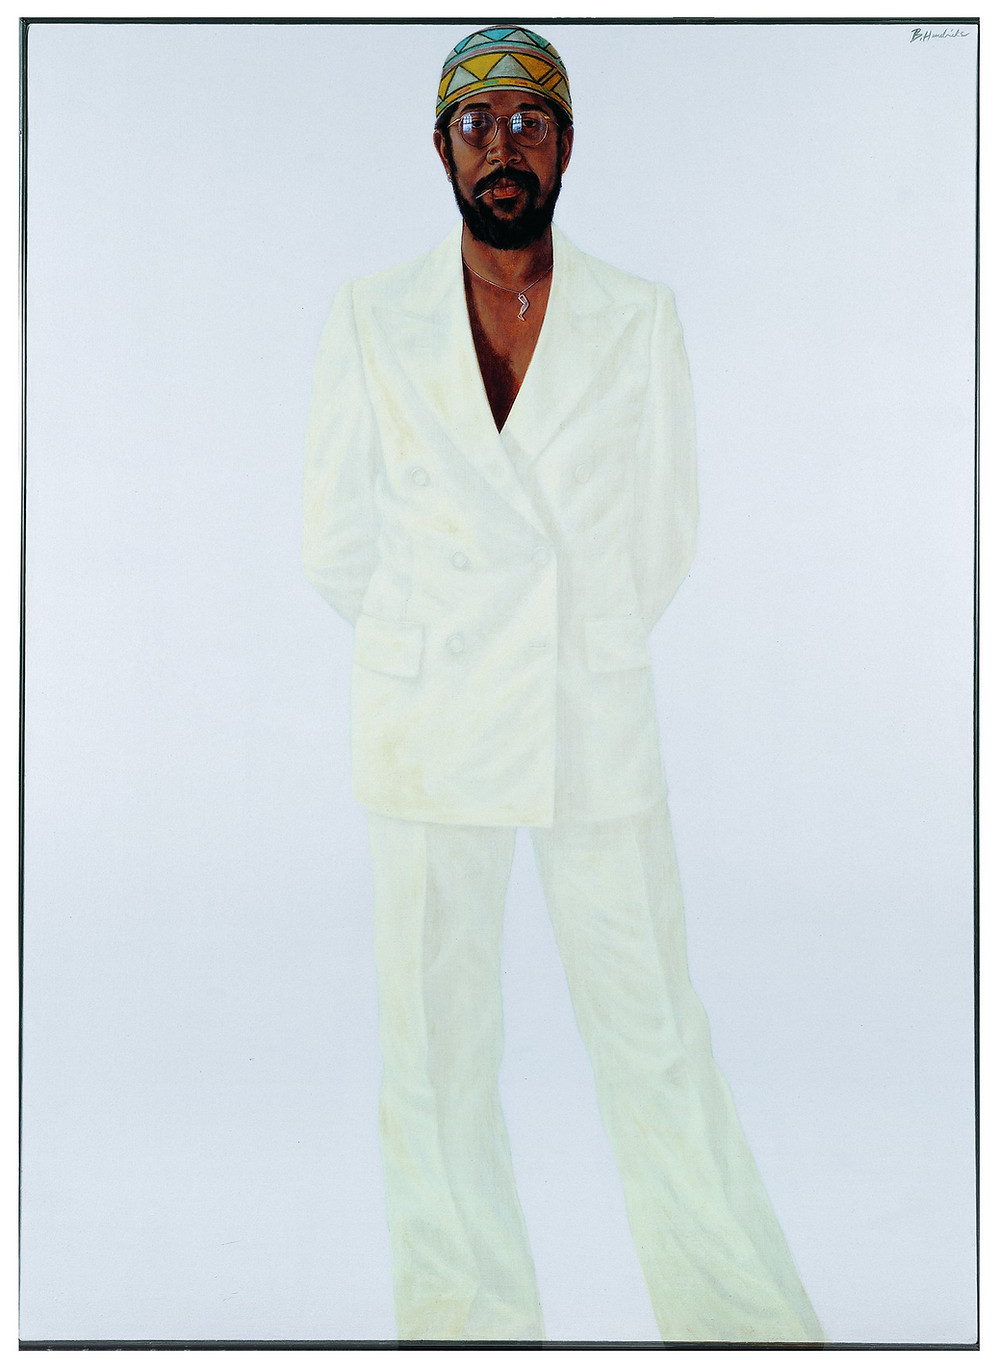 Black artist Barkey L. Hendricks' self portrait wearing a white suit